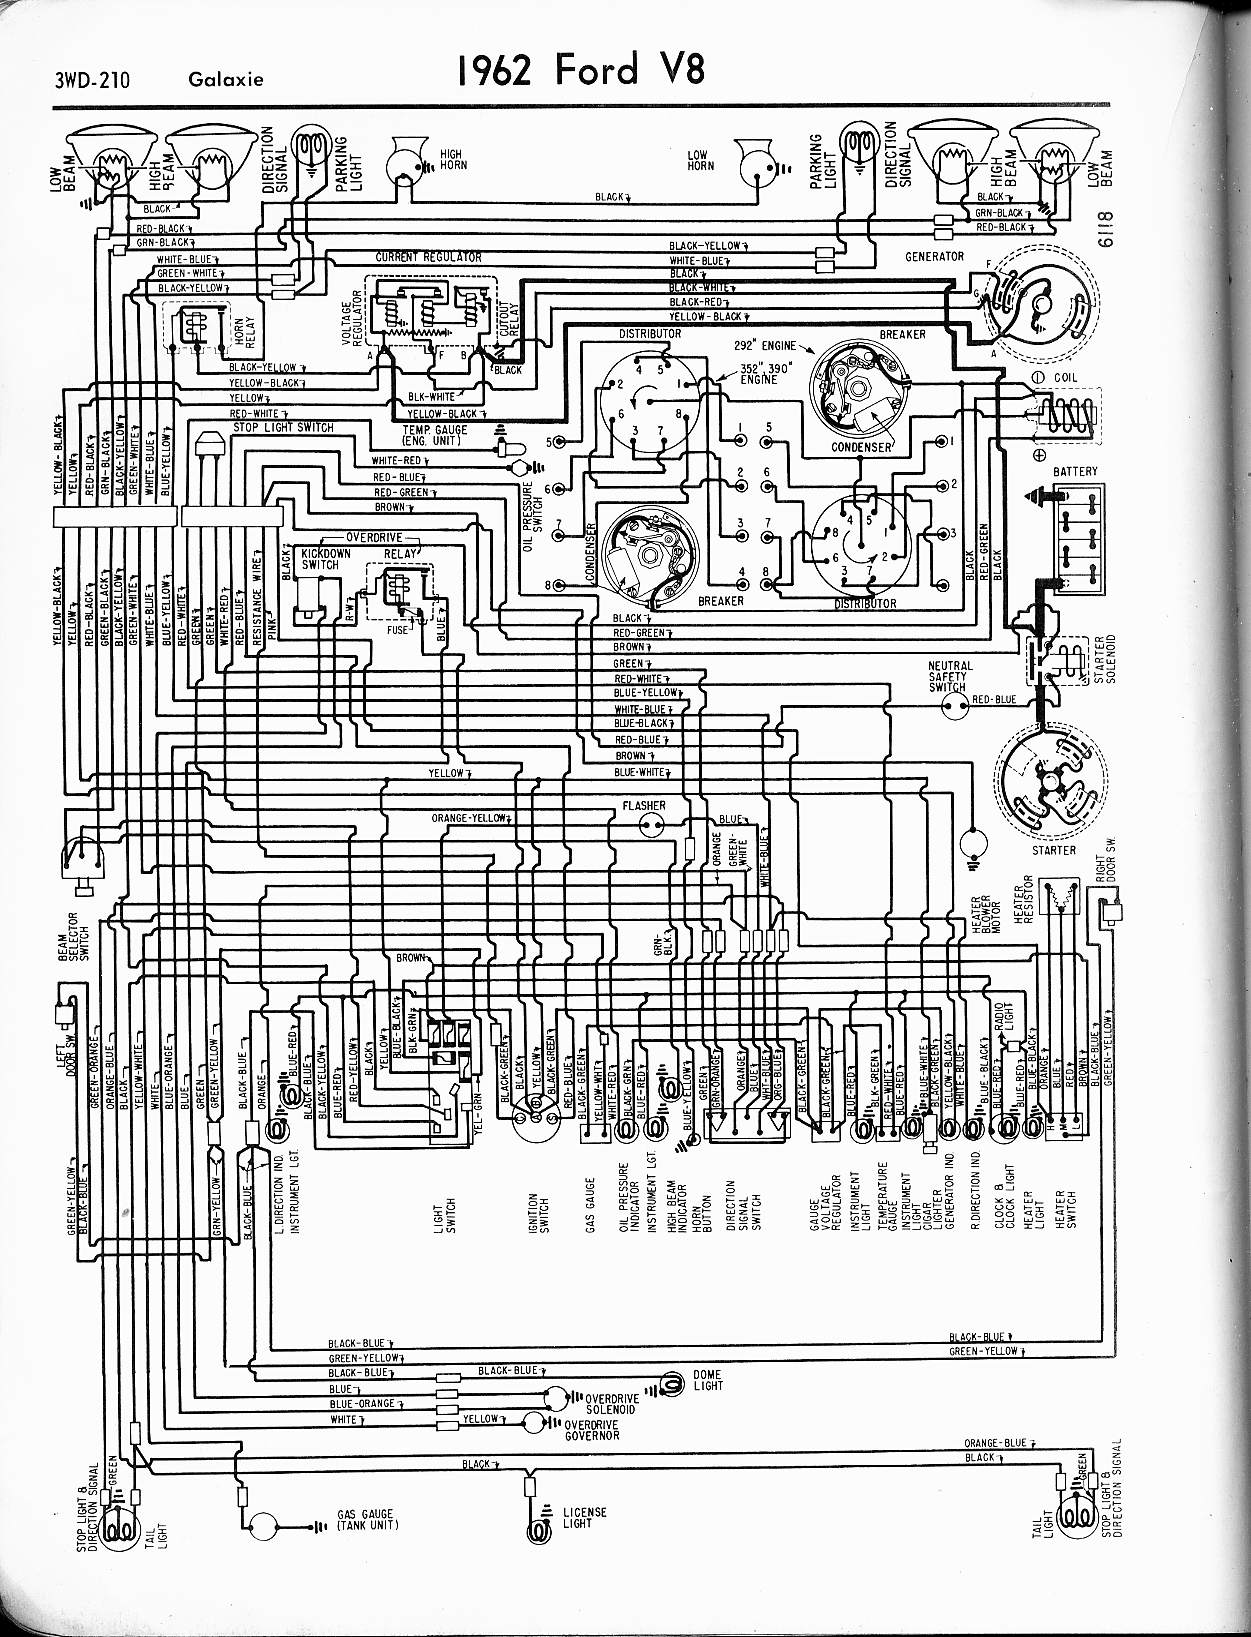 1962 ford f 250 circuit diagram 1966 ford f 250 wiring diagram 57-65 ford wiring diagrams #8